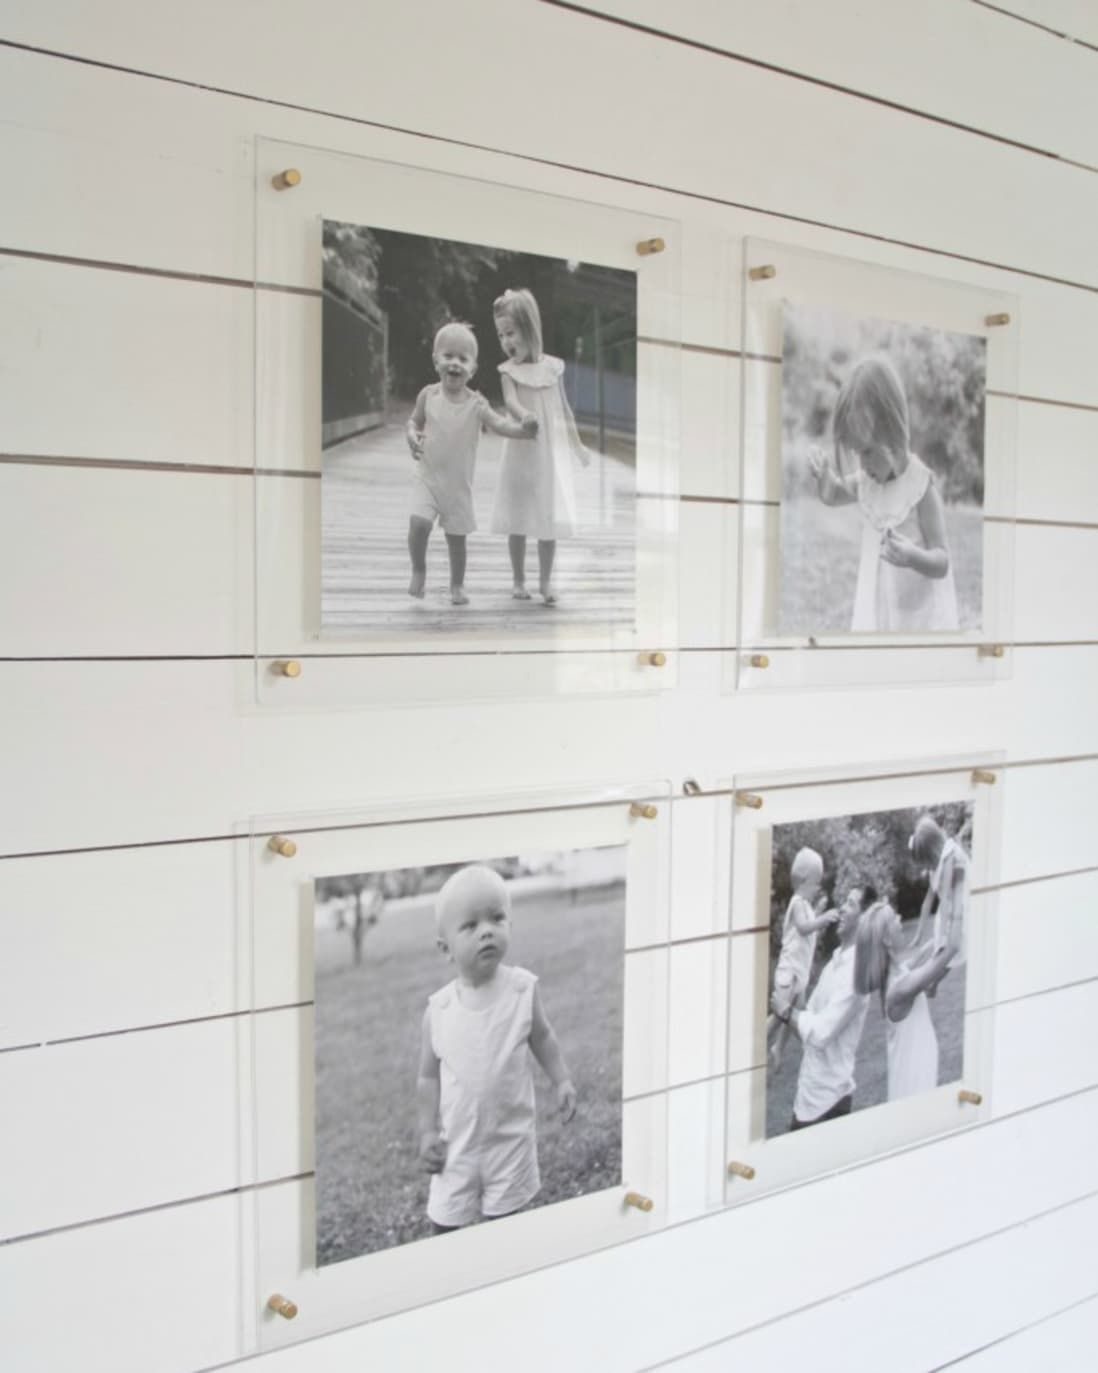 Amazing Acrylic Frames 10 Examples That Will Convince You To Float Your Art In 2020 Gallery Wall Frames Acrylic Frames Frame